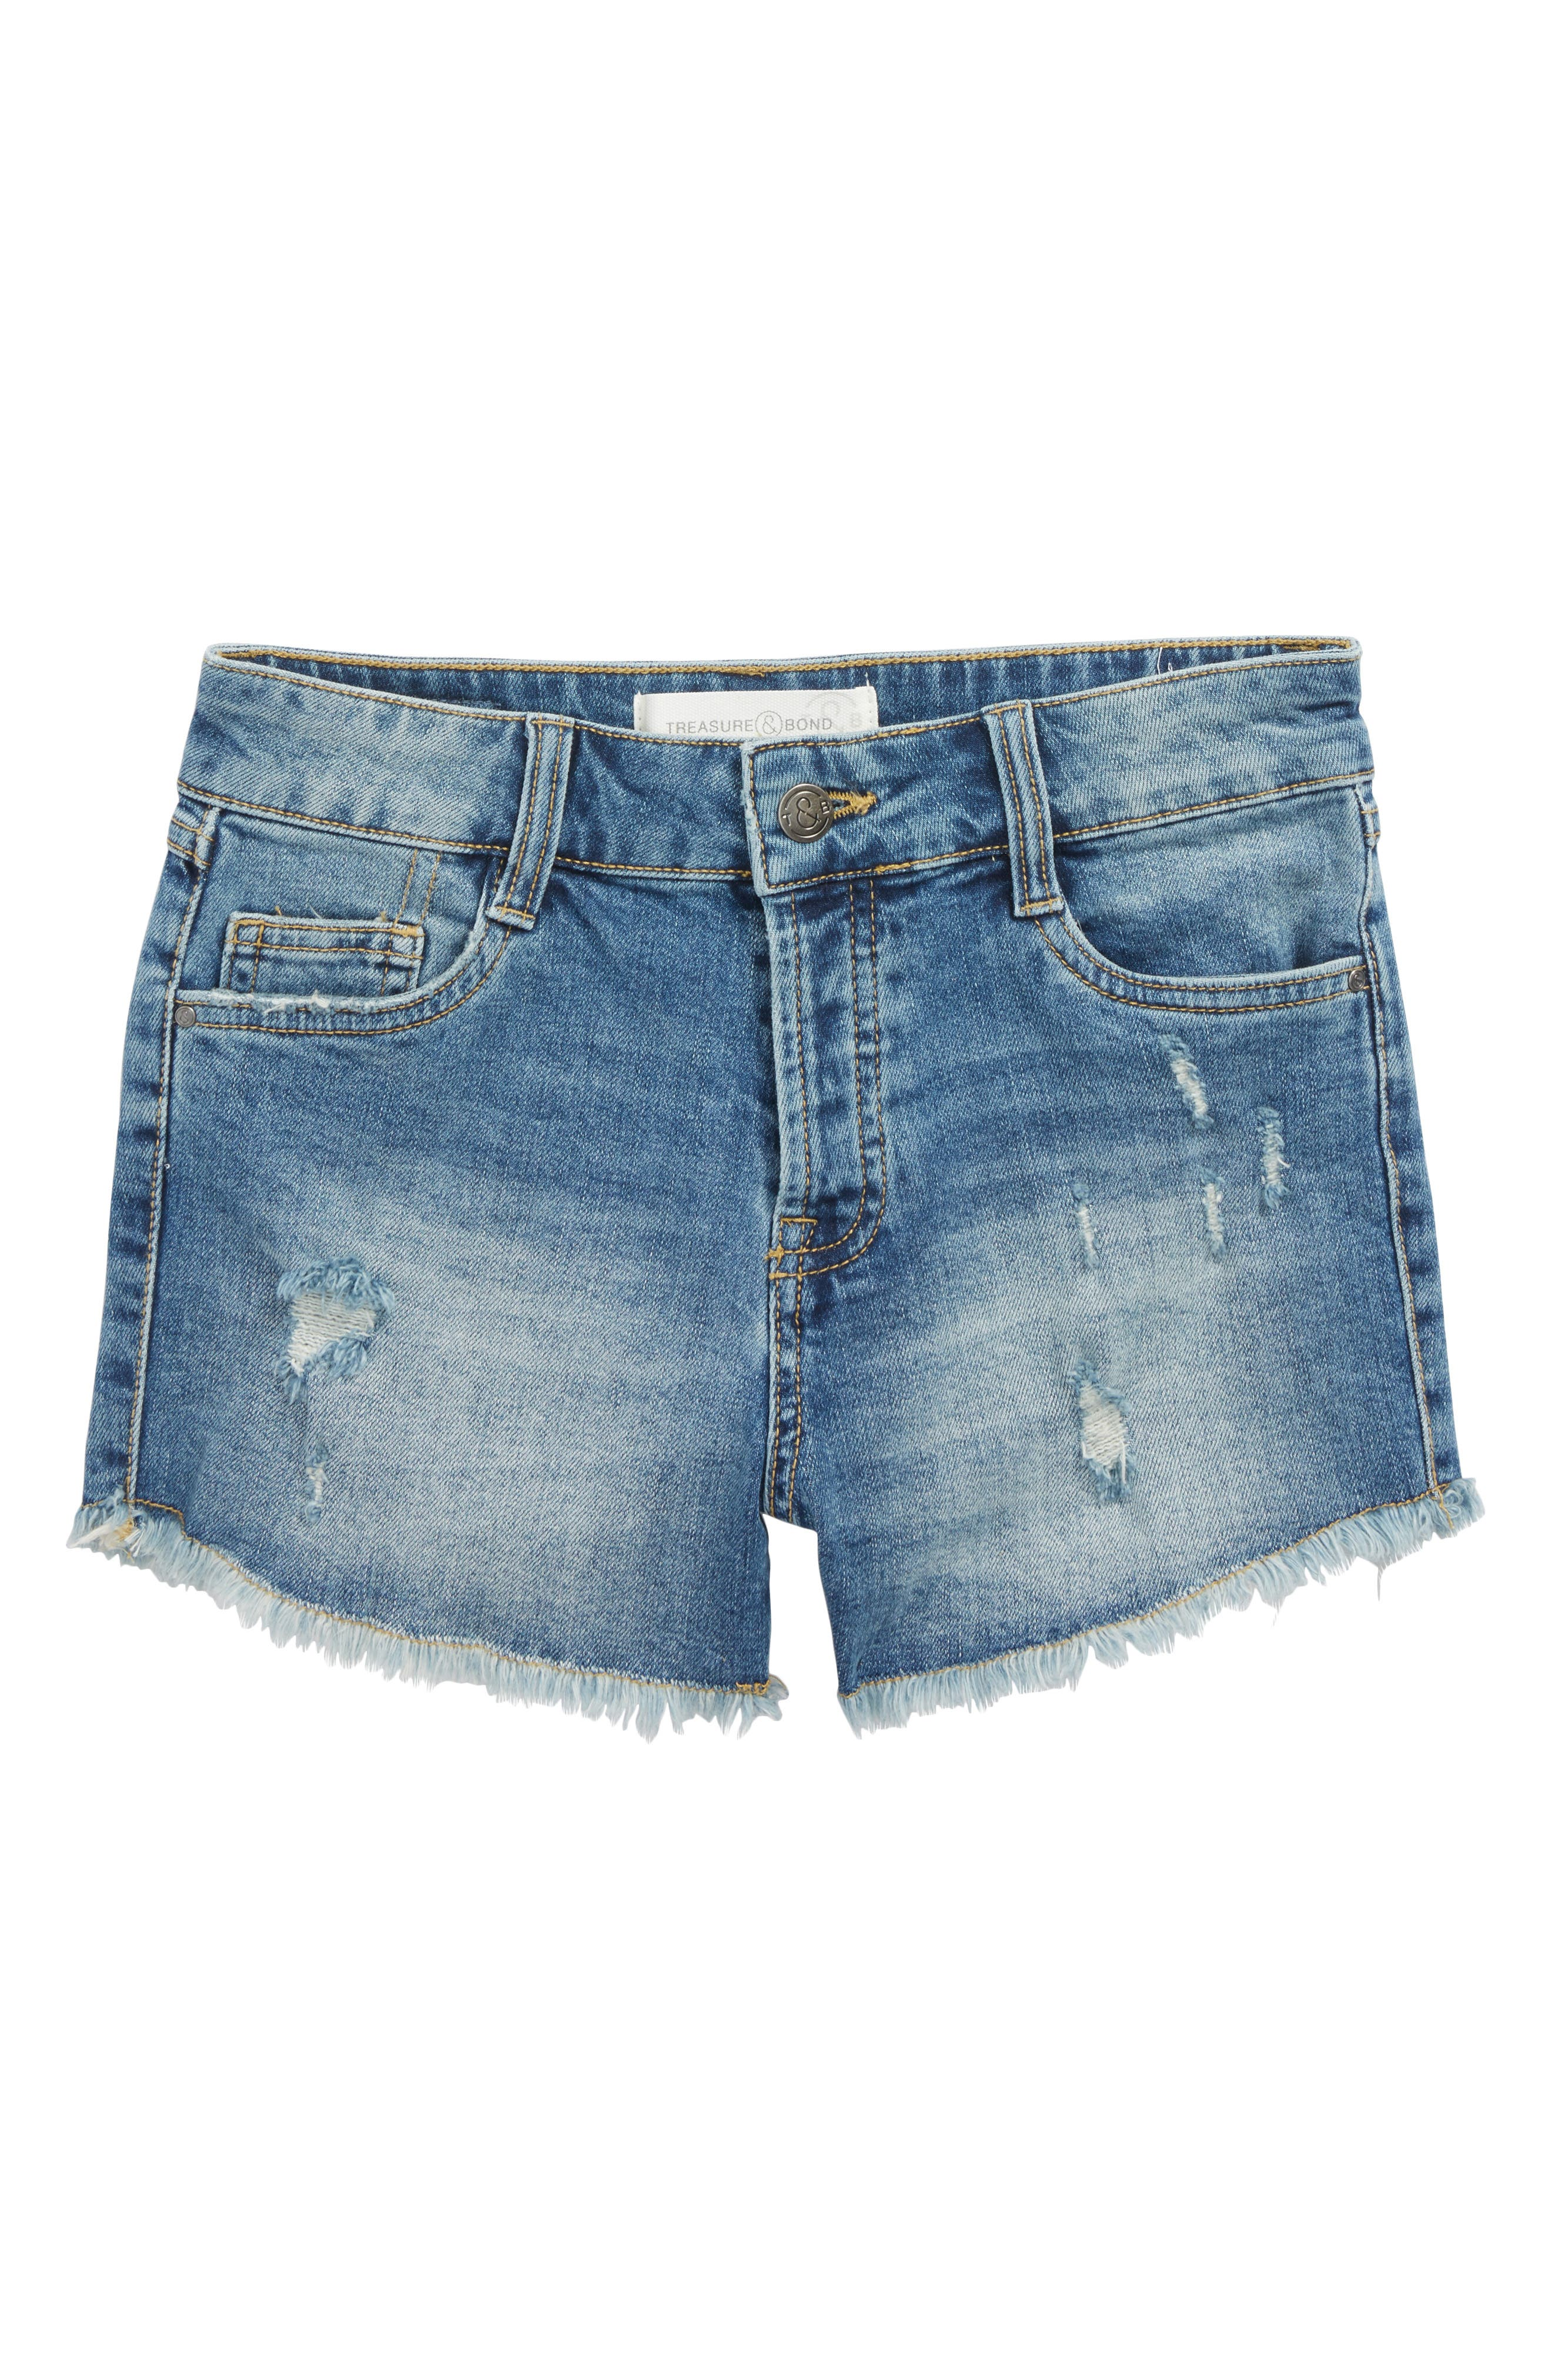 Distressed Cutoff Denim Shorts,                         Main,                         color, Old School Wash